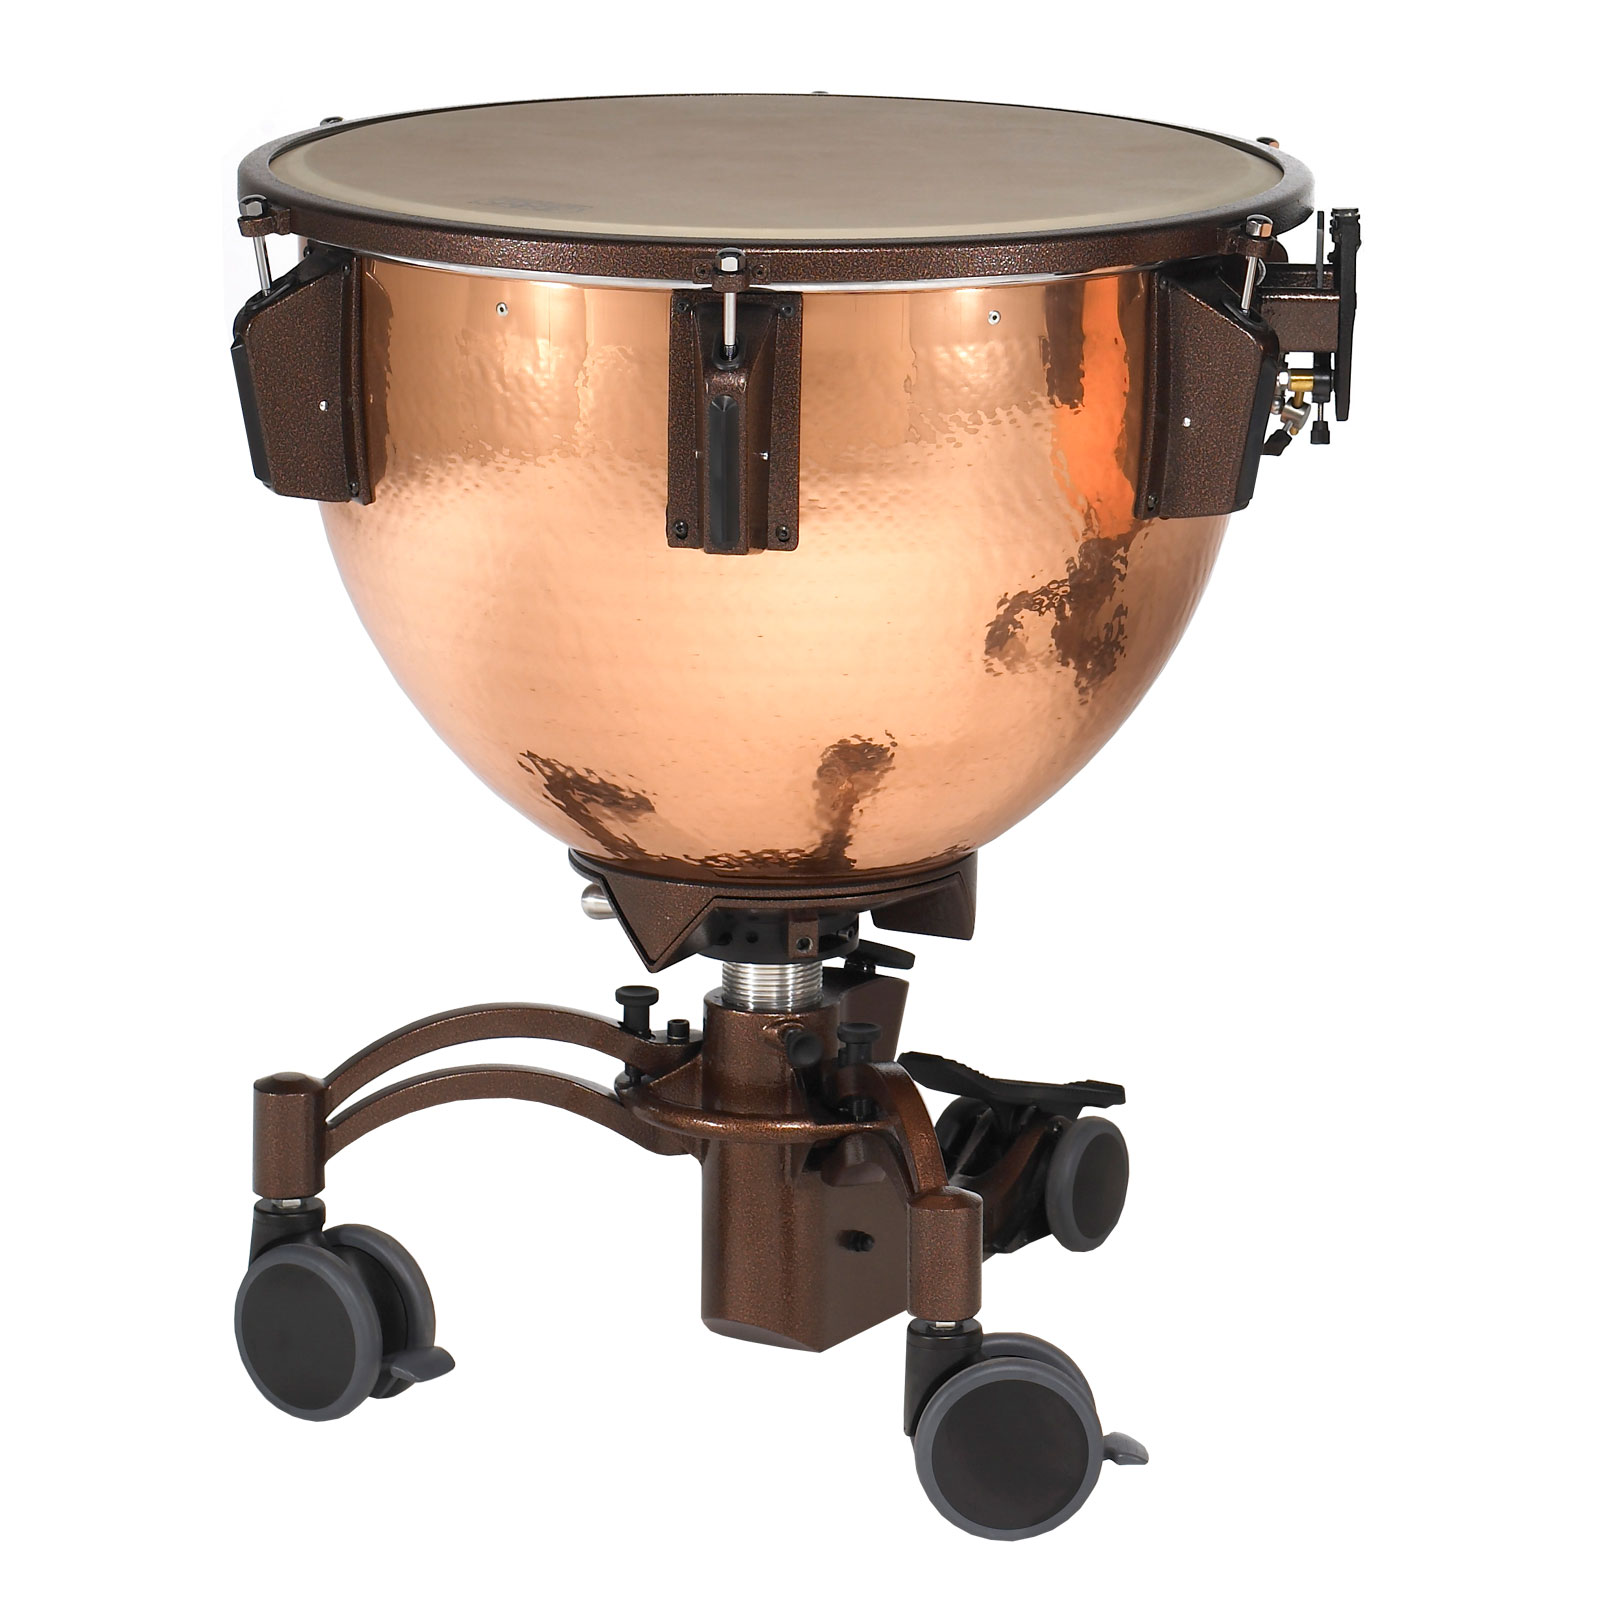 "Adams 32"" Revolution Hammered Copper Timpani with Fine Tuner"